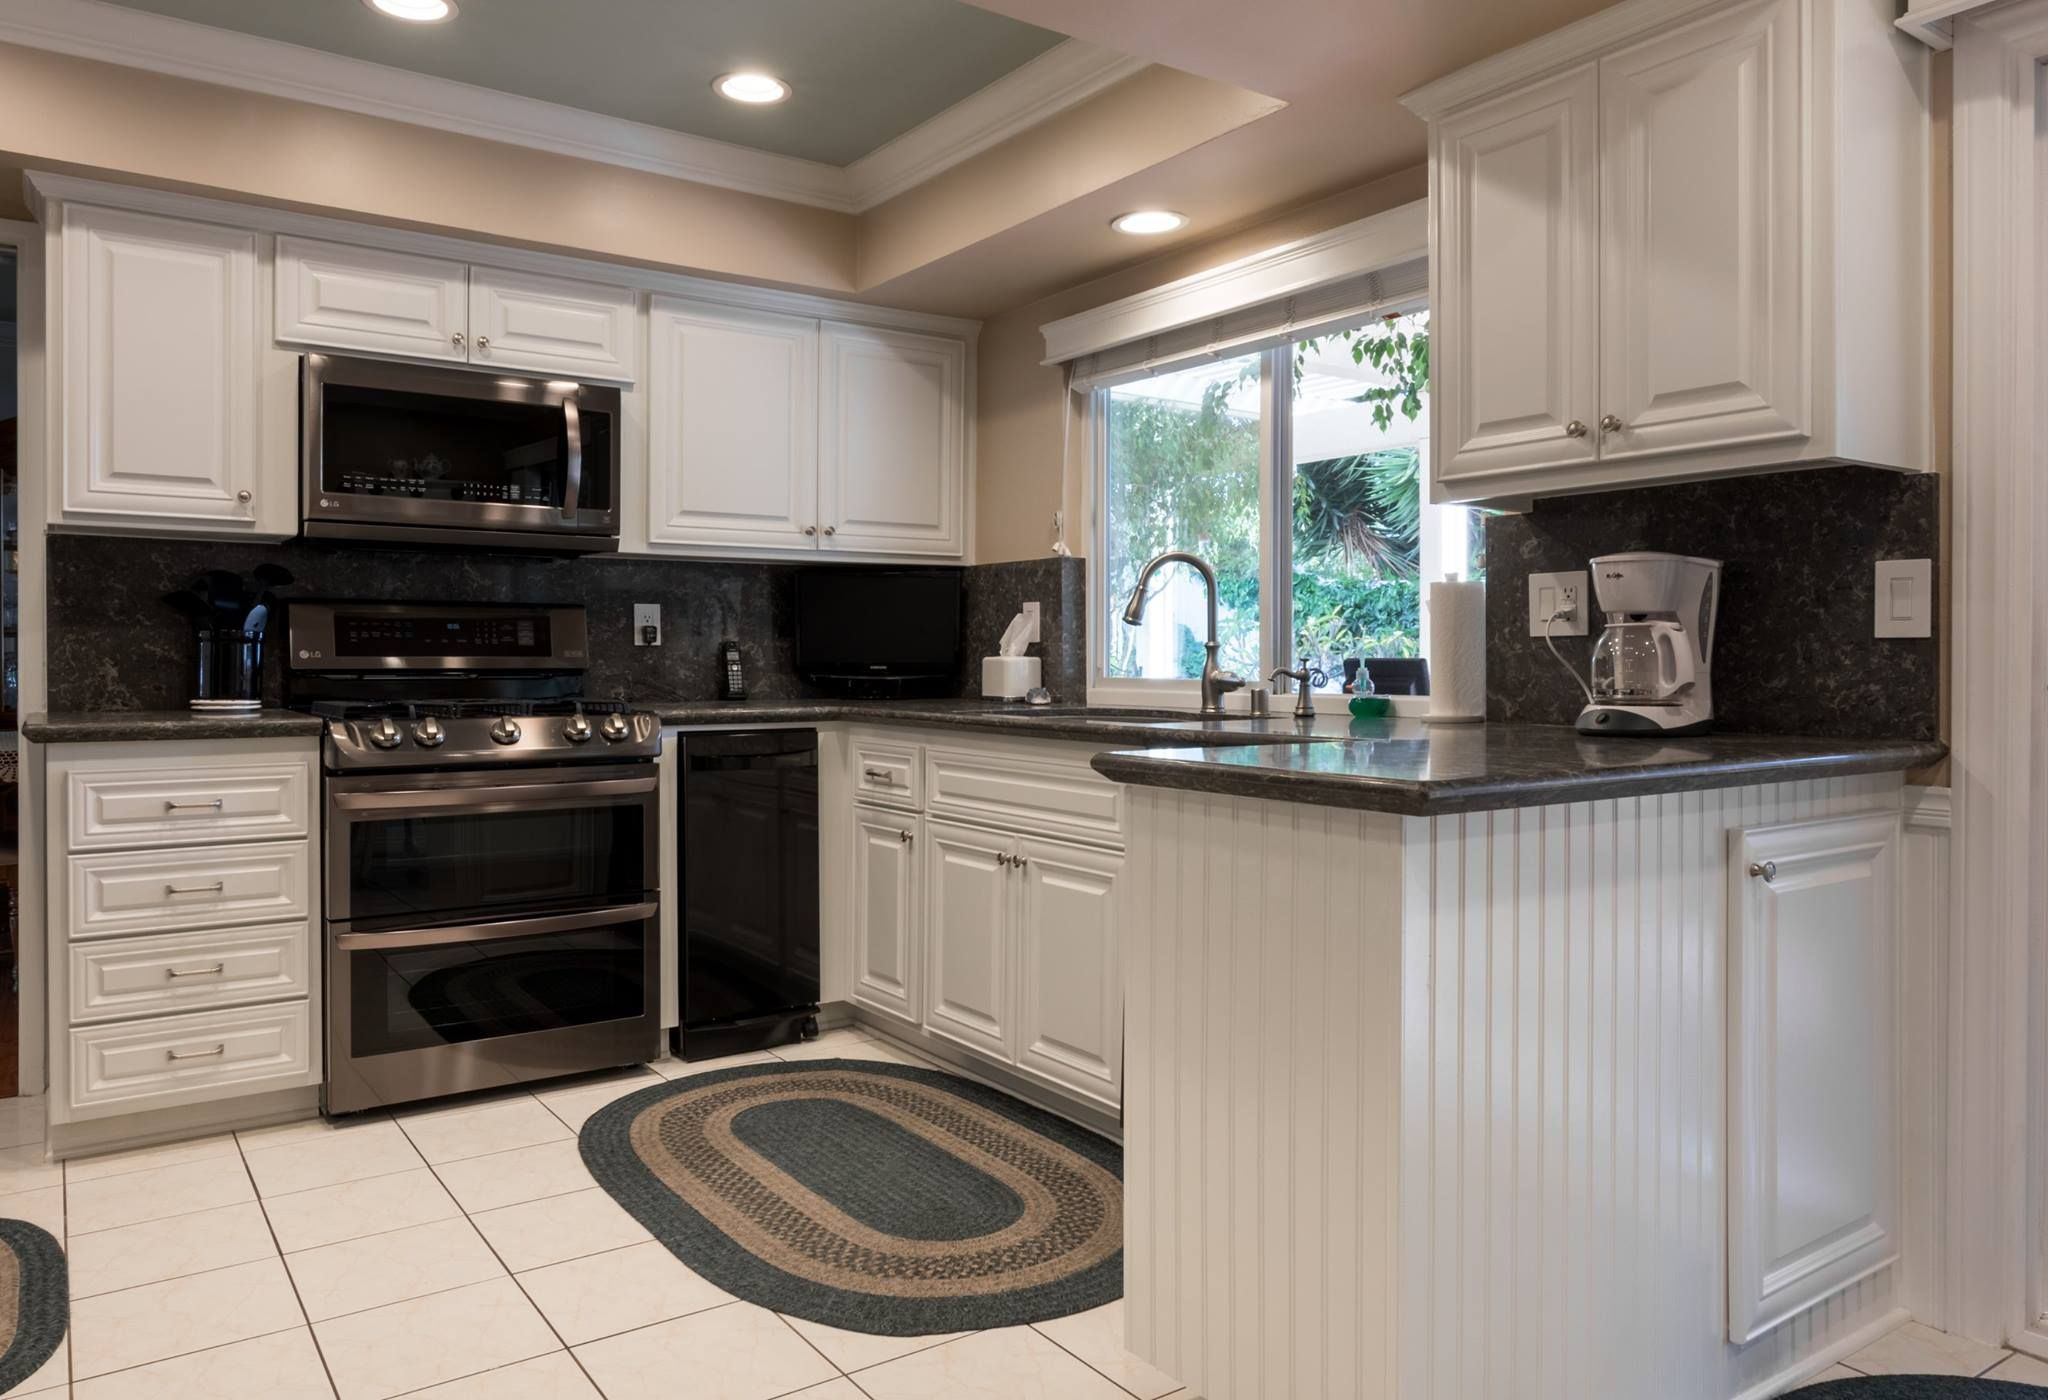 pin by 3 day kitchens on kitchen cabinet refacing ideas refacing kitchen cabinets kitchen on kitchen cabinets refacing id=78326